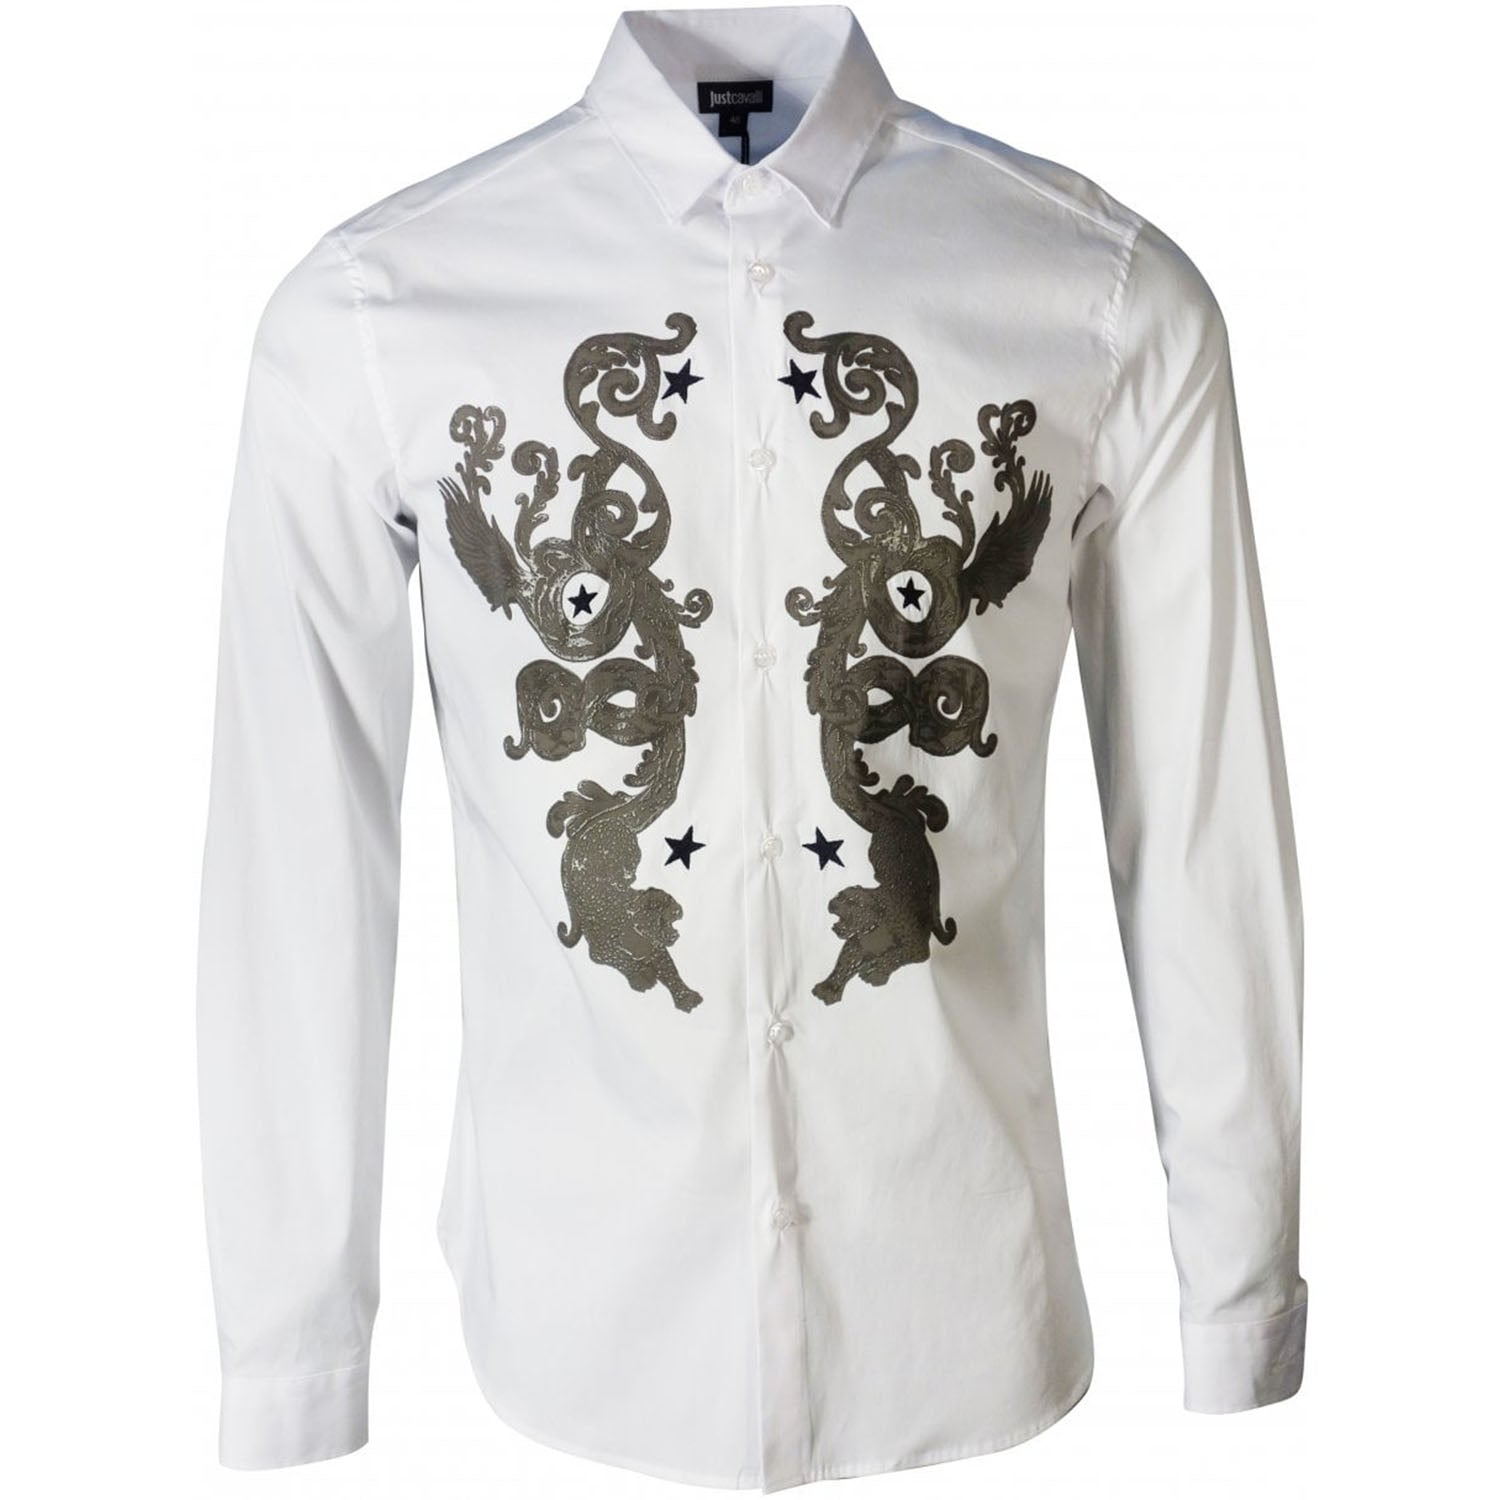 Just Cavalli Embroidery And Print Shirt